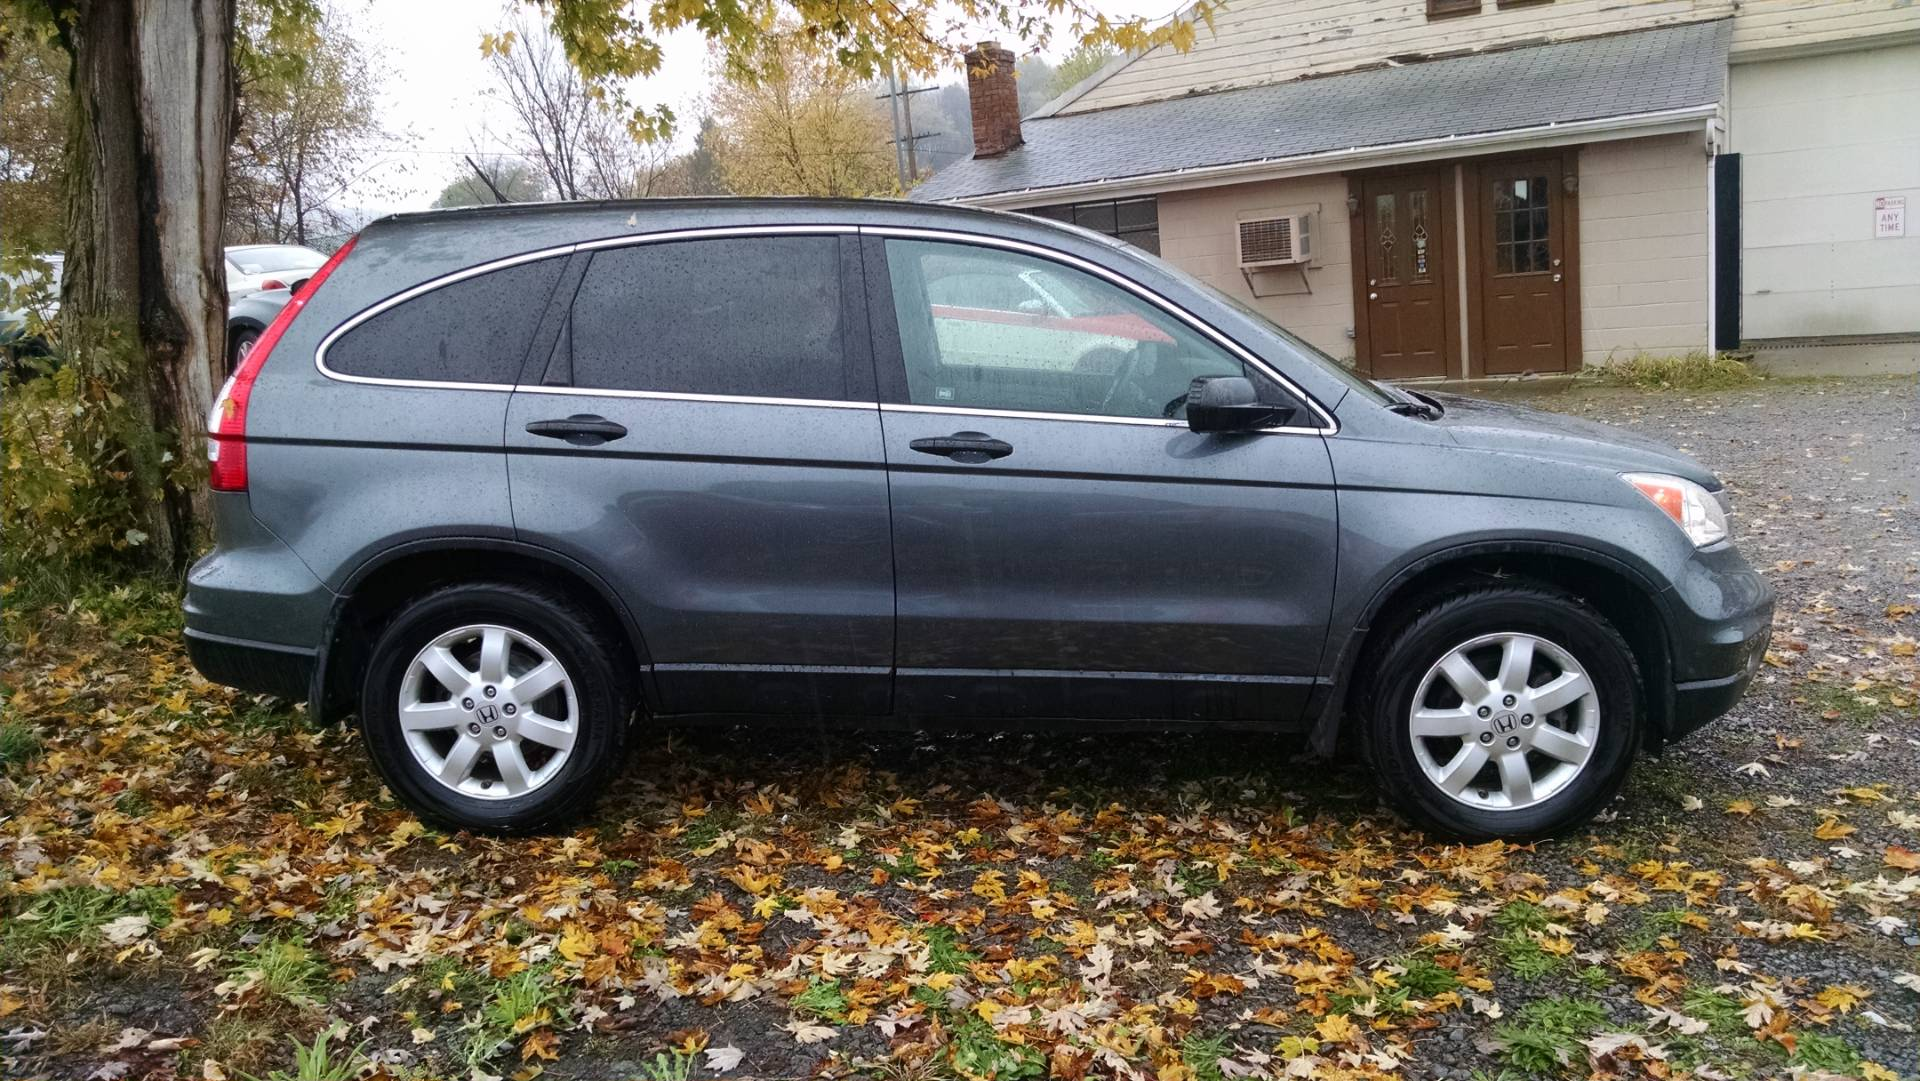 2011 Honda CRV in Harmony, Pennsylvania - Photo 2